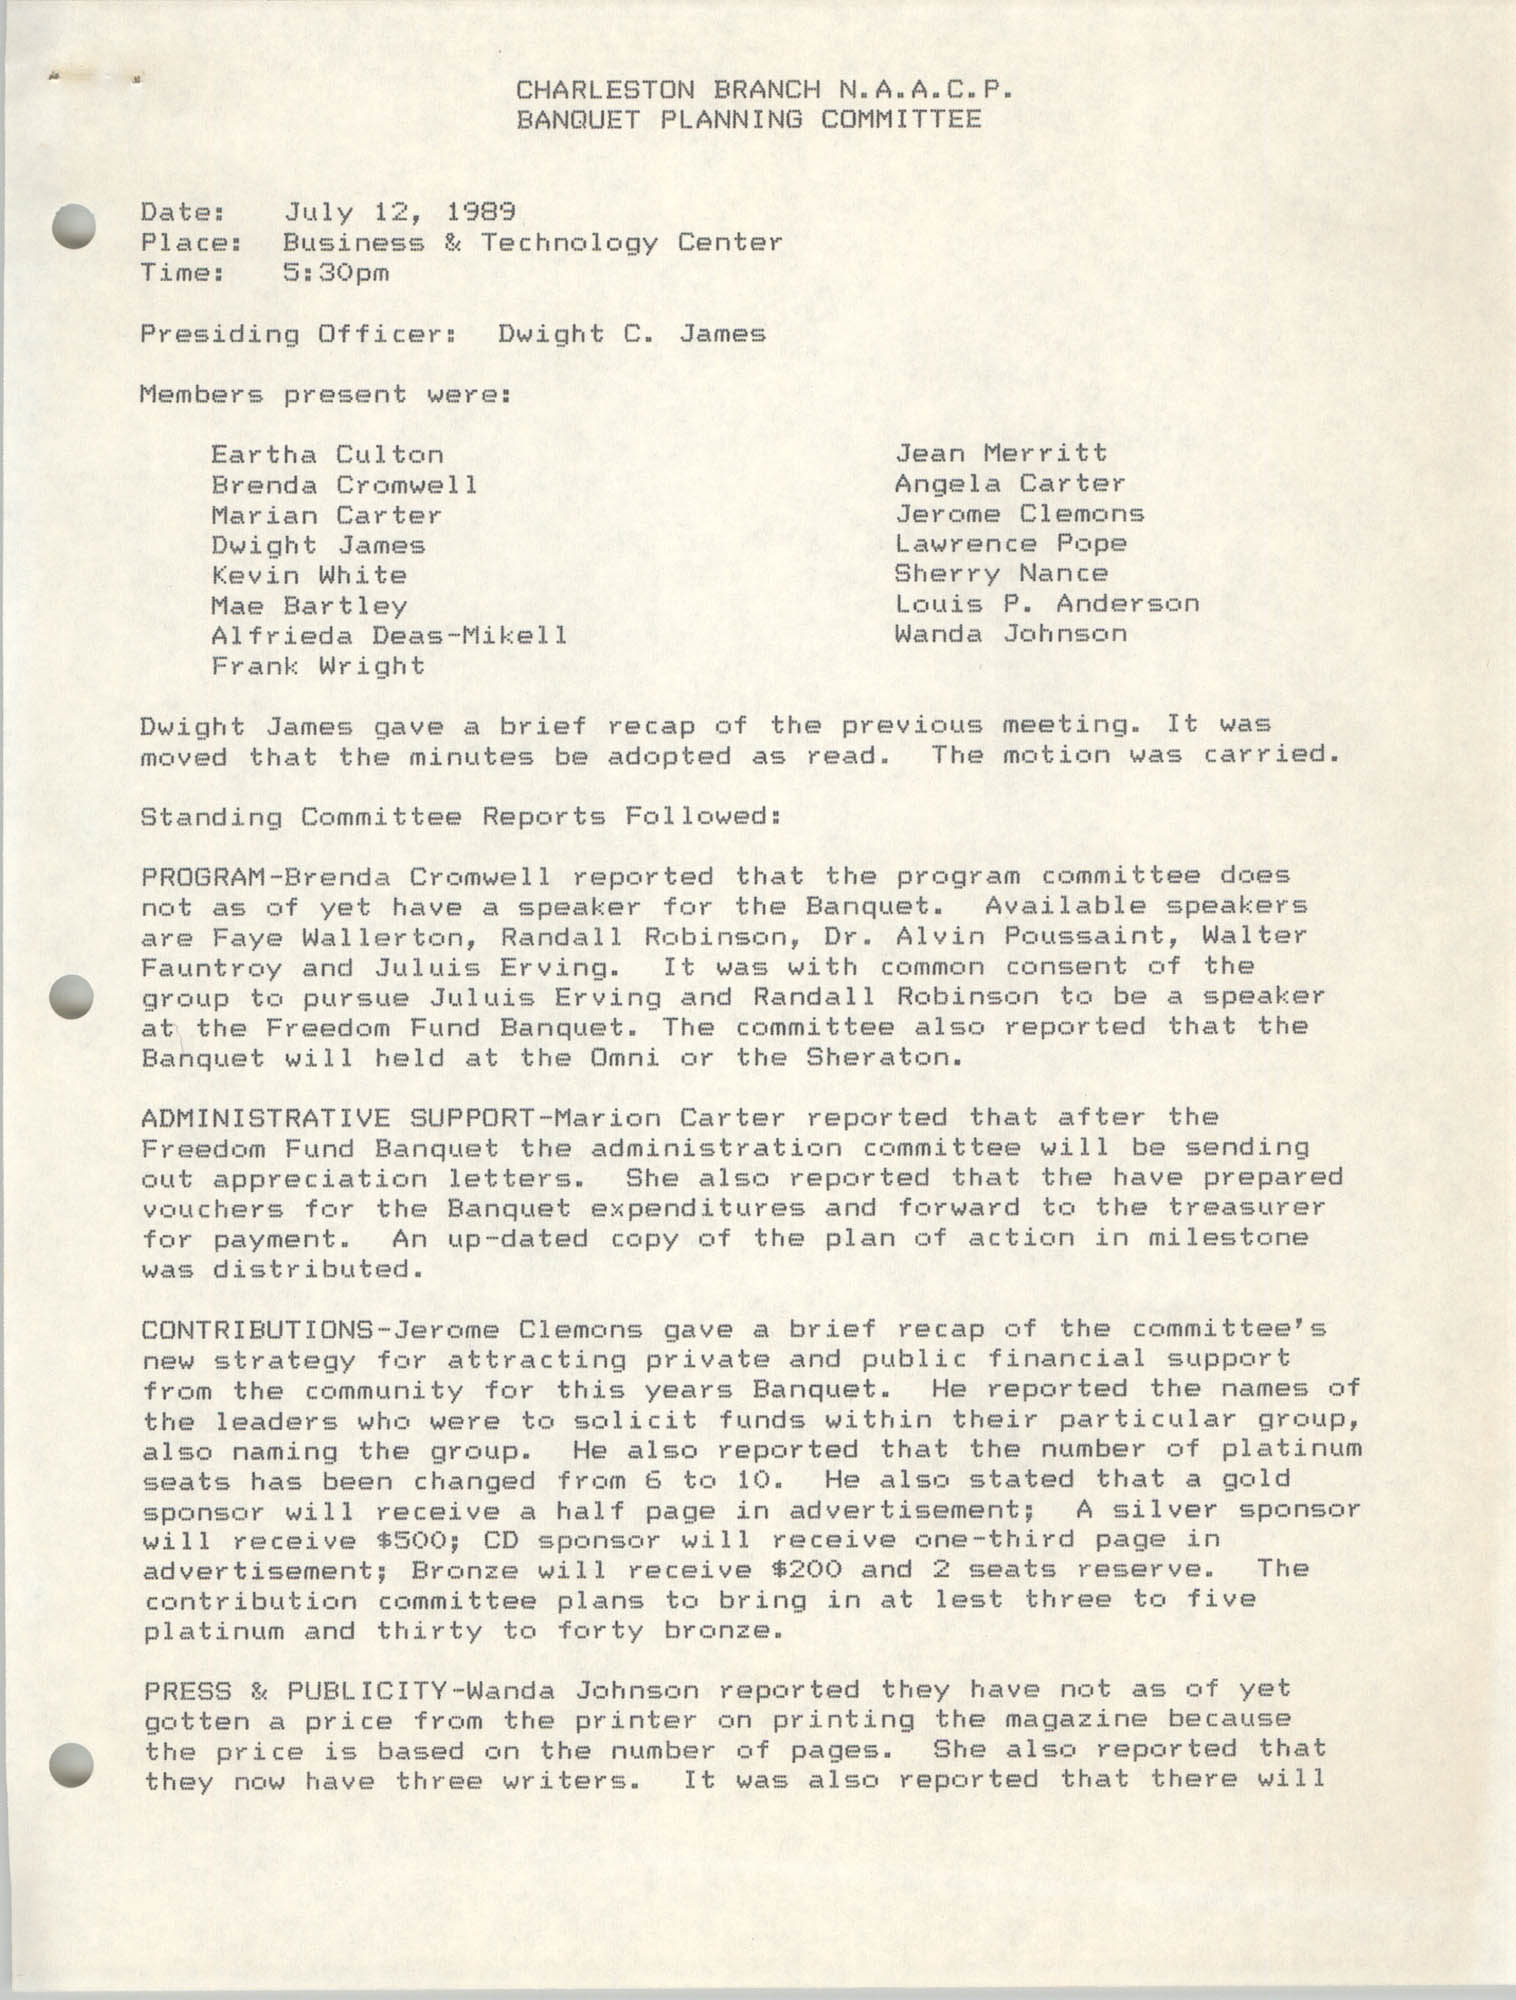 Minutes, Banquet Planning Committee, Charleston Branch of the NAACP, Sheryl Wilborn, July 12, 1989